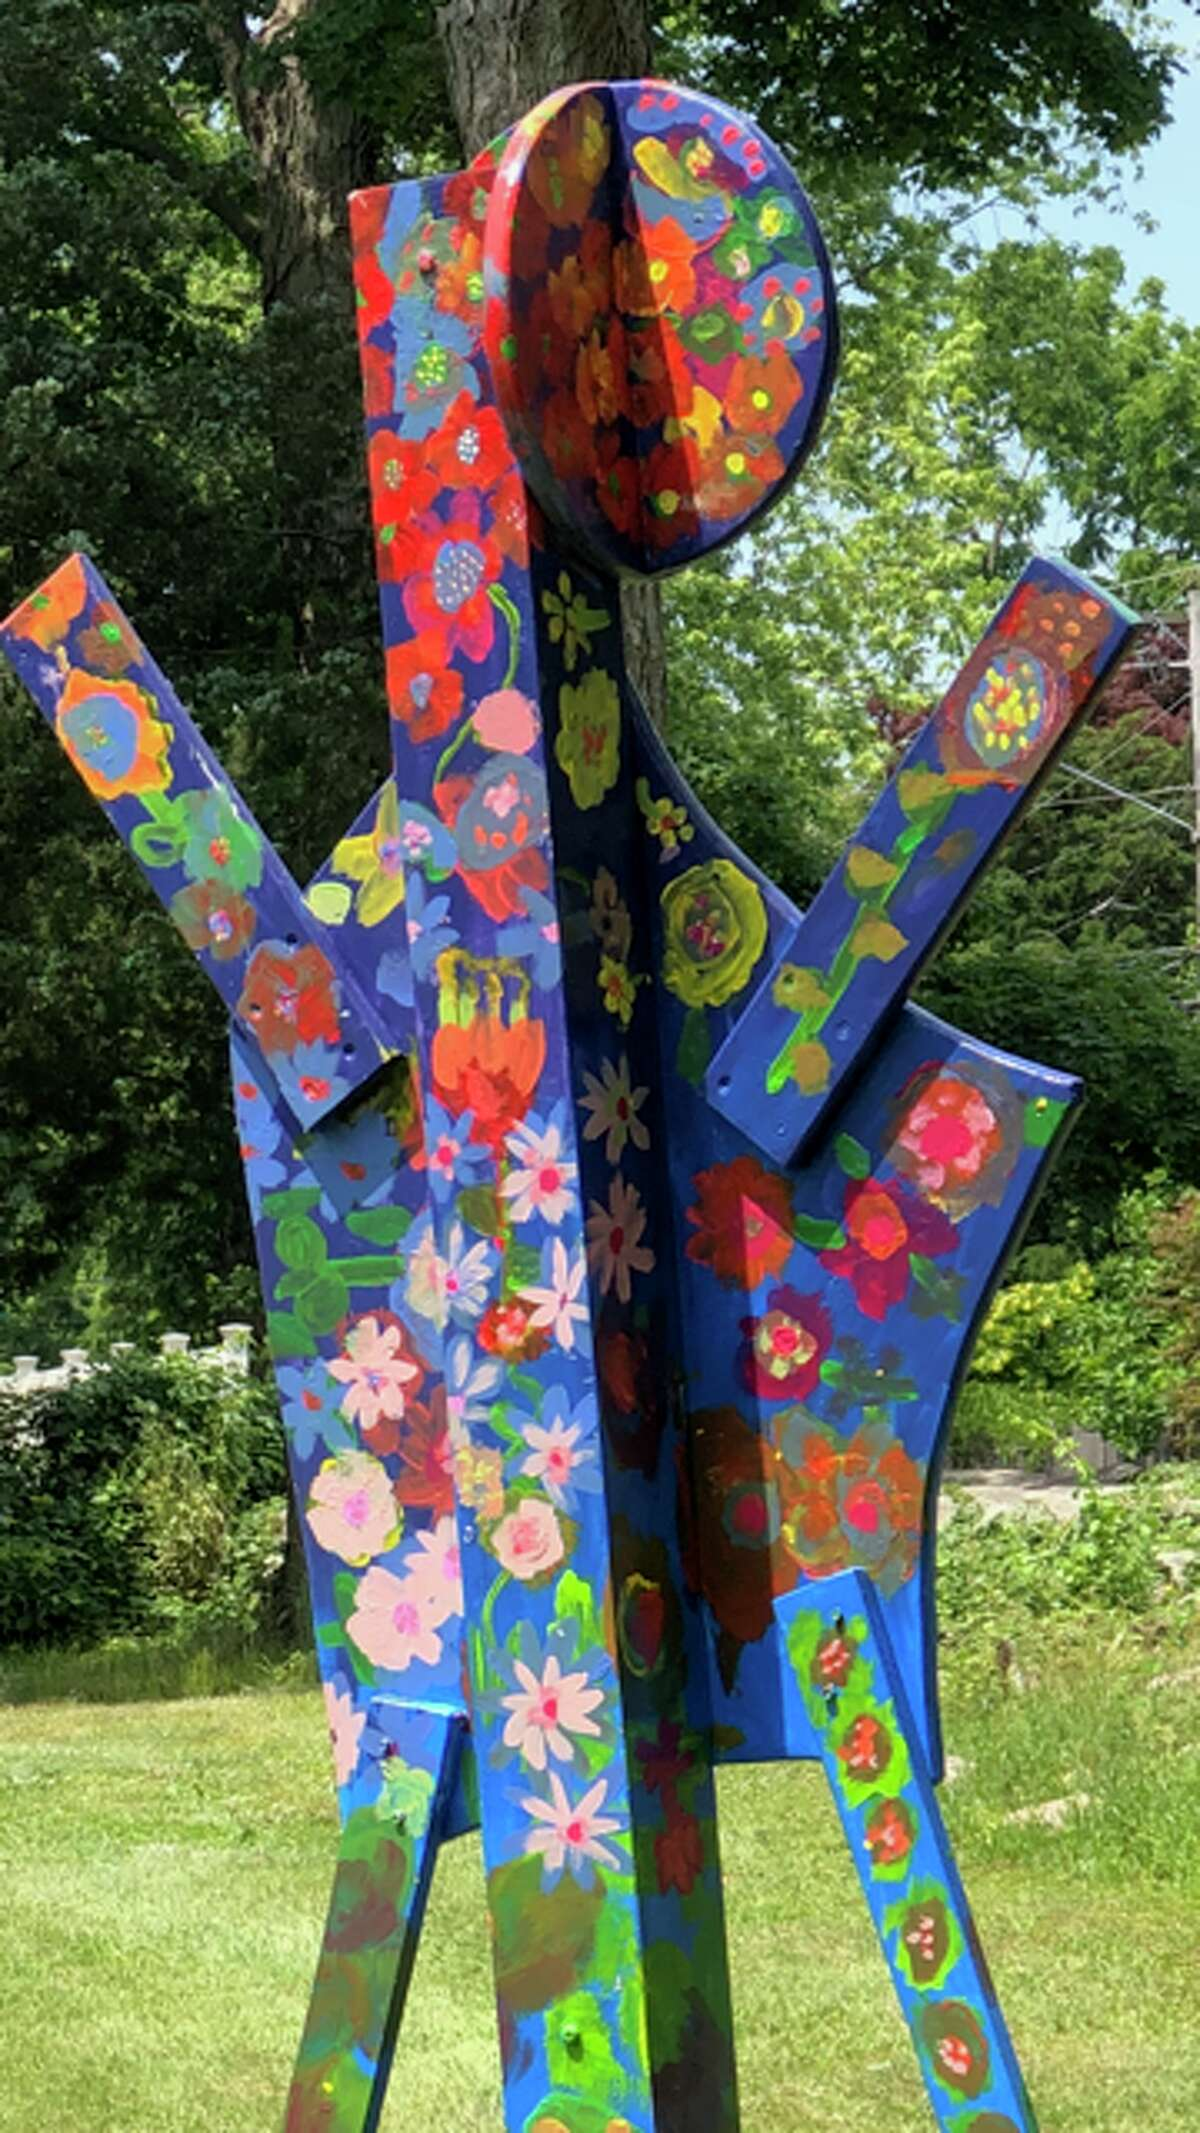 The nine sculptures are currently on display at the upper and lower gardens of the farm. In addition to the sculptures, the CMS students planted lettuce and radishes seedlings at theschool garden space at Fodor Farm, according to a press release.